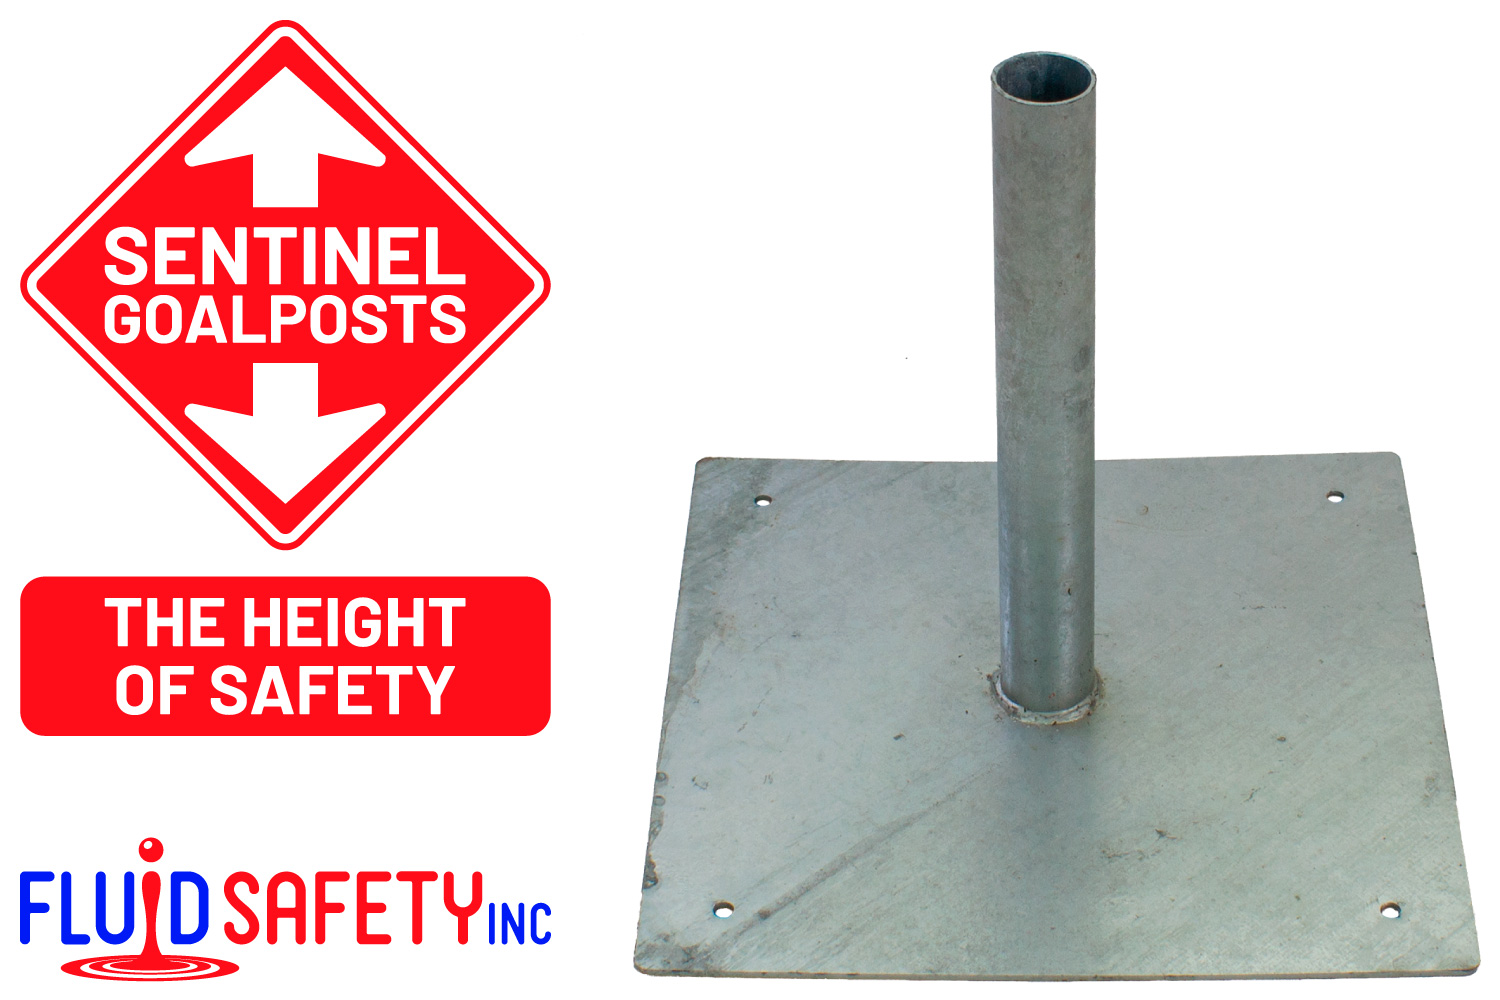 Red Telescopic Poles and Bunting for Height Restrction Barriers